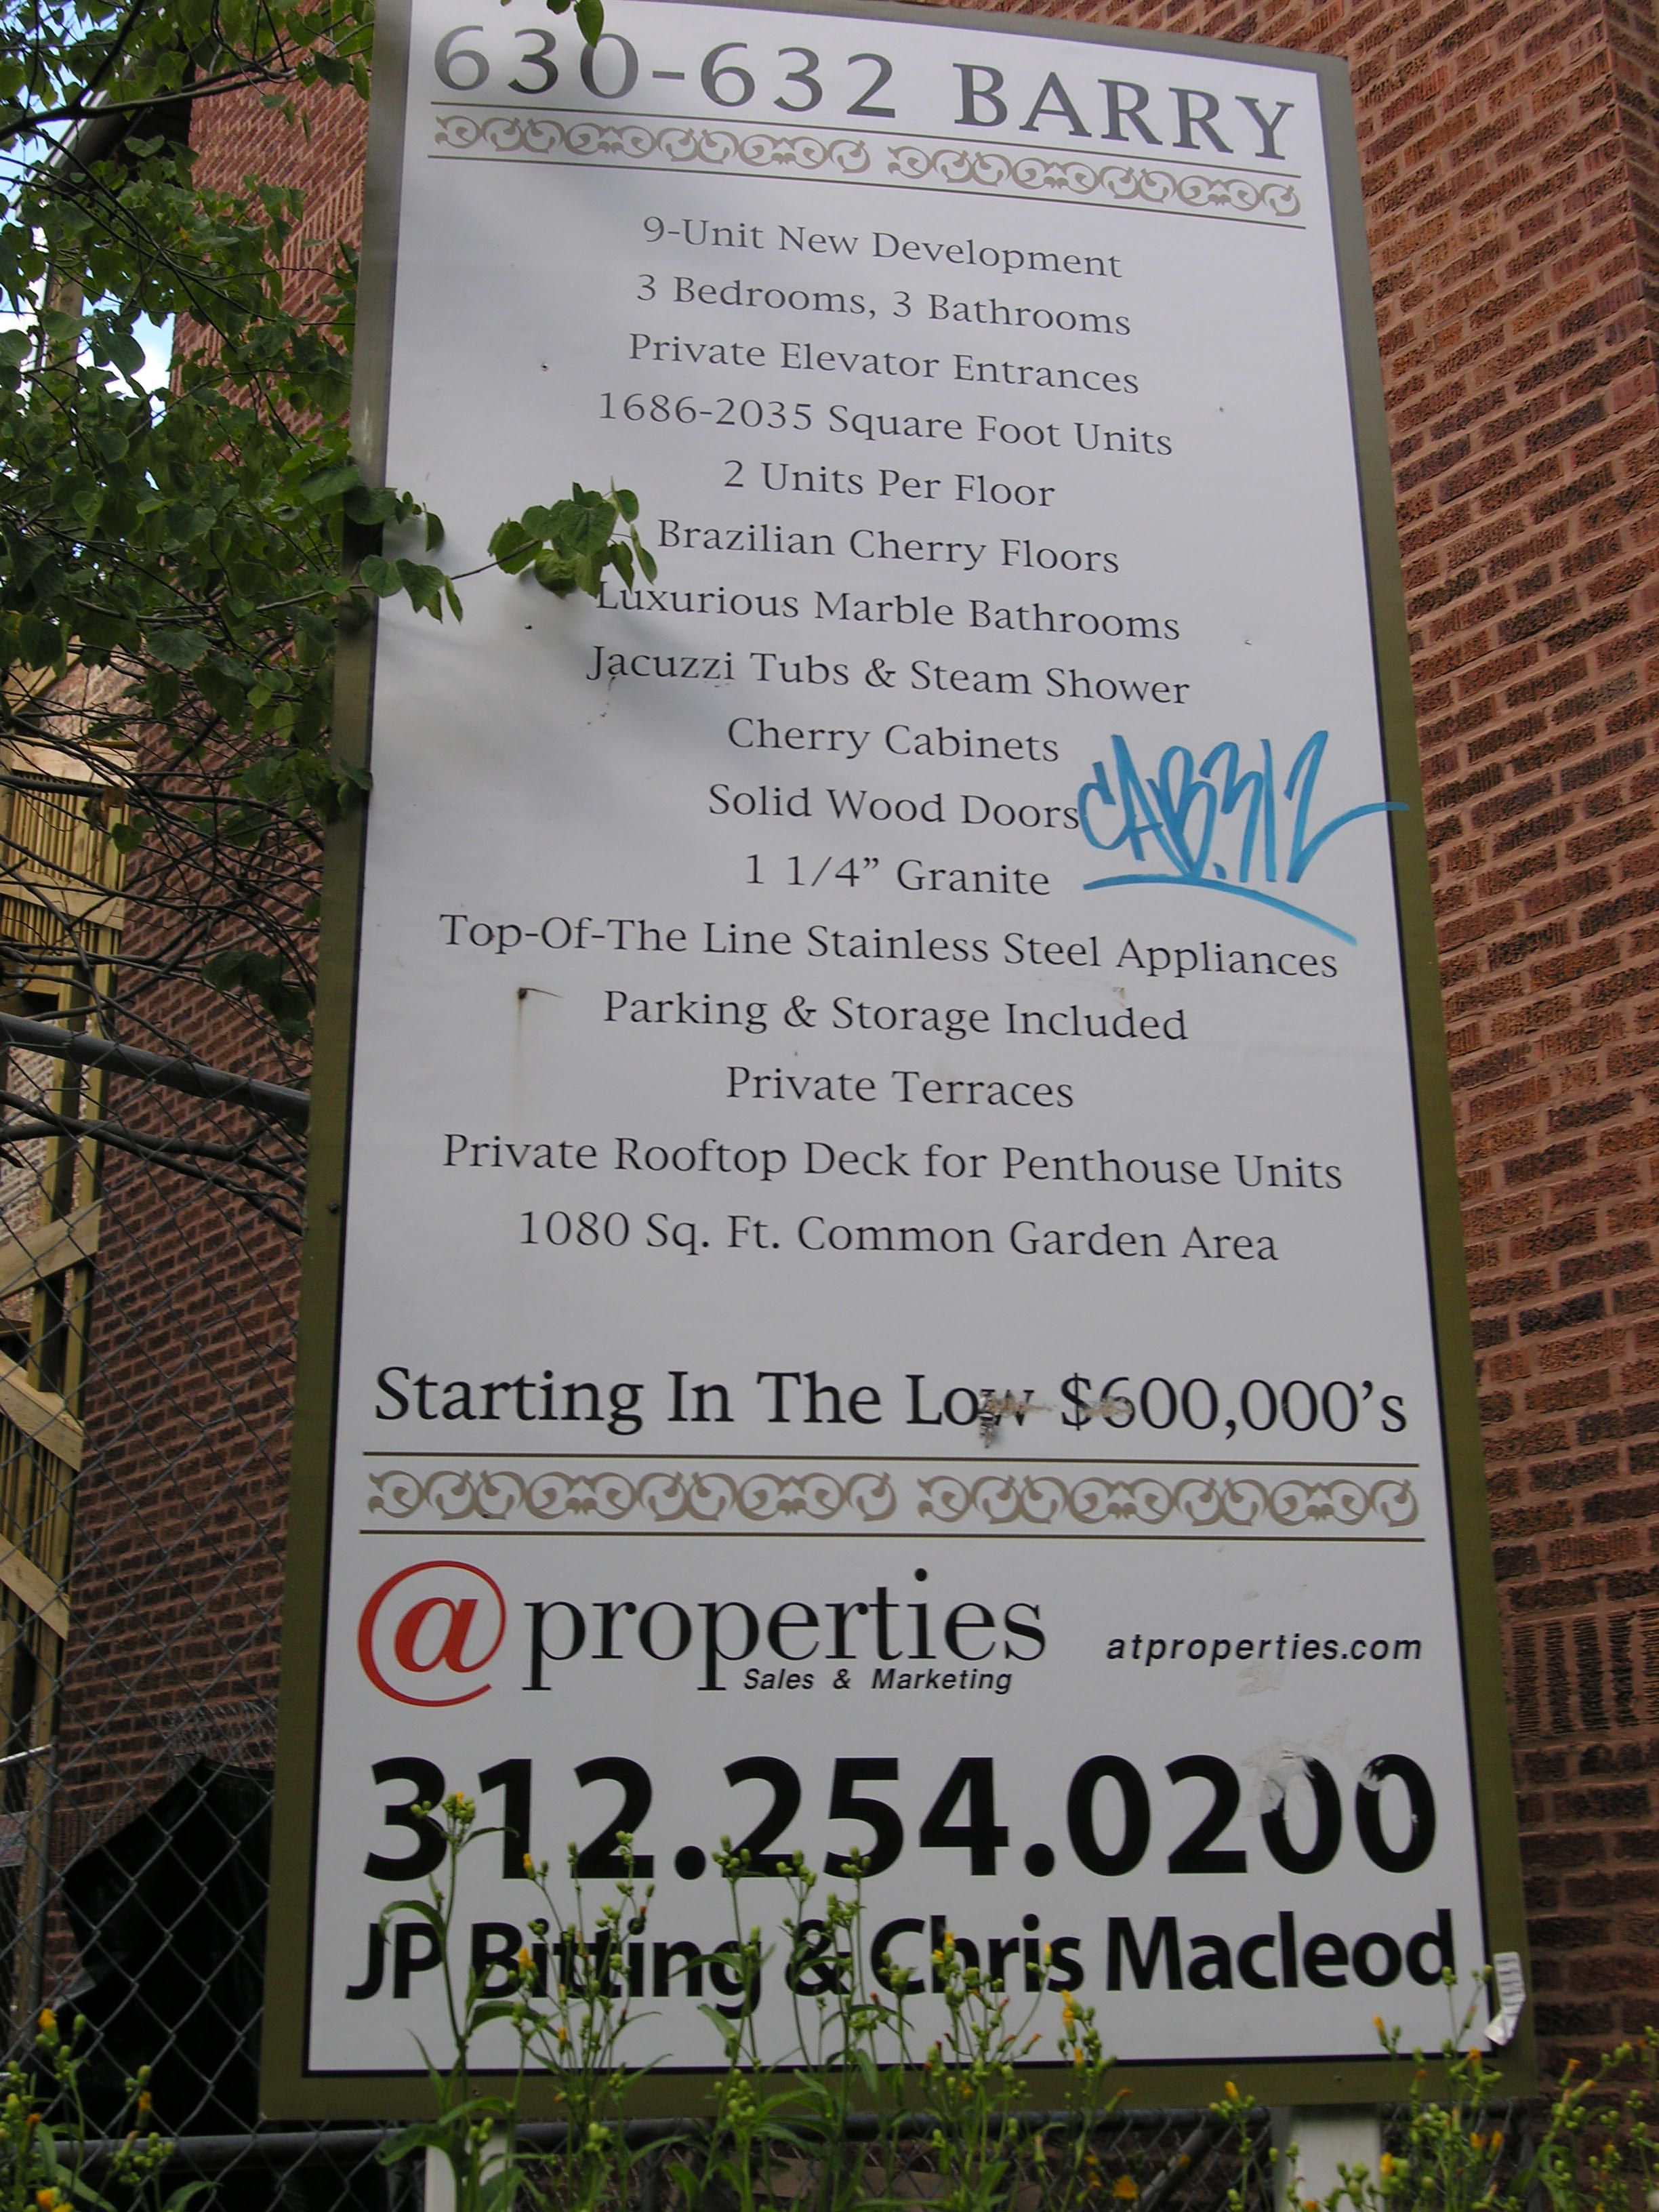 Advertising sign for 630-632 W Barry Ave